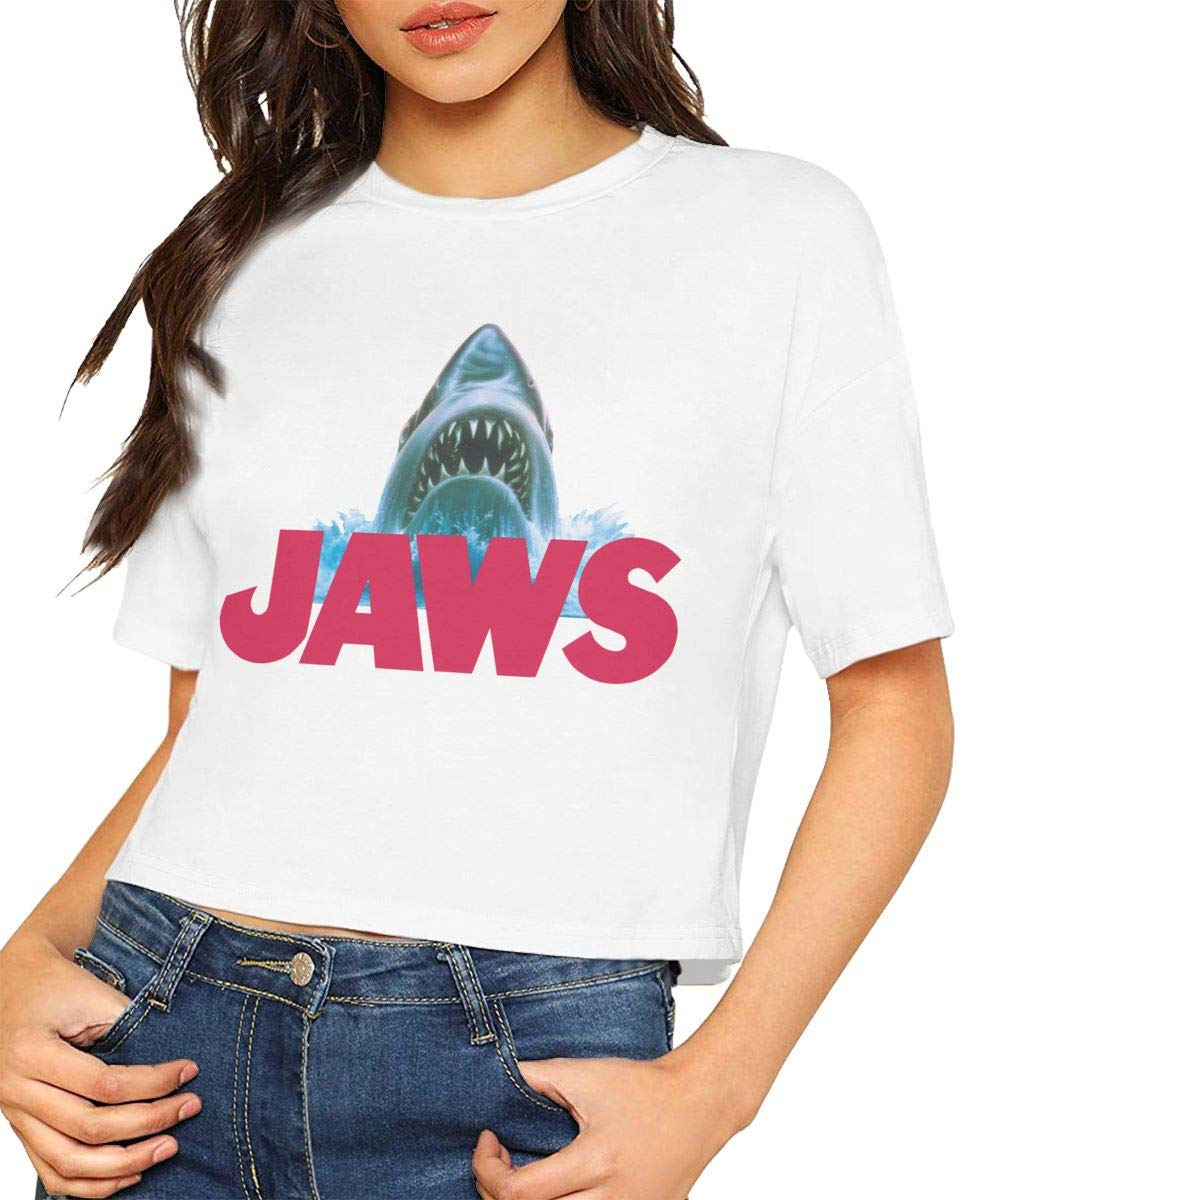 Smooffly Womens Crop Tops Jaws Short Sleeves T-Shirts